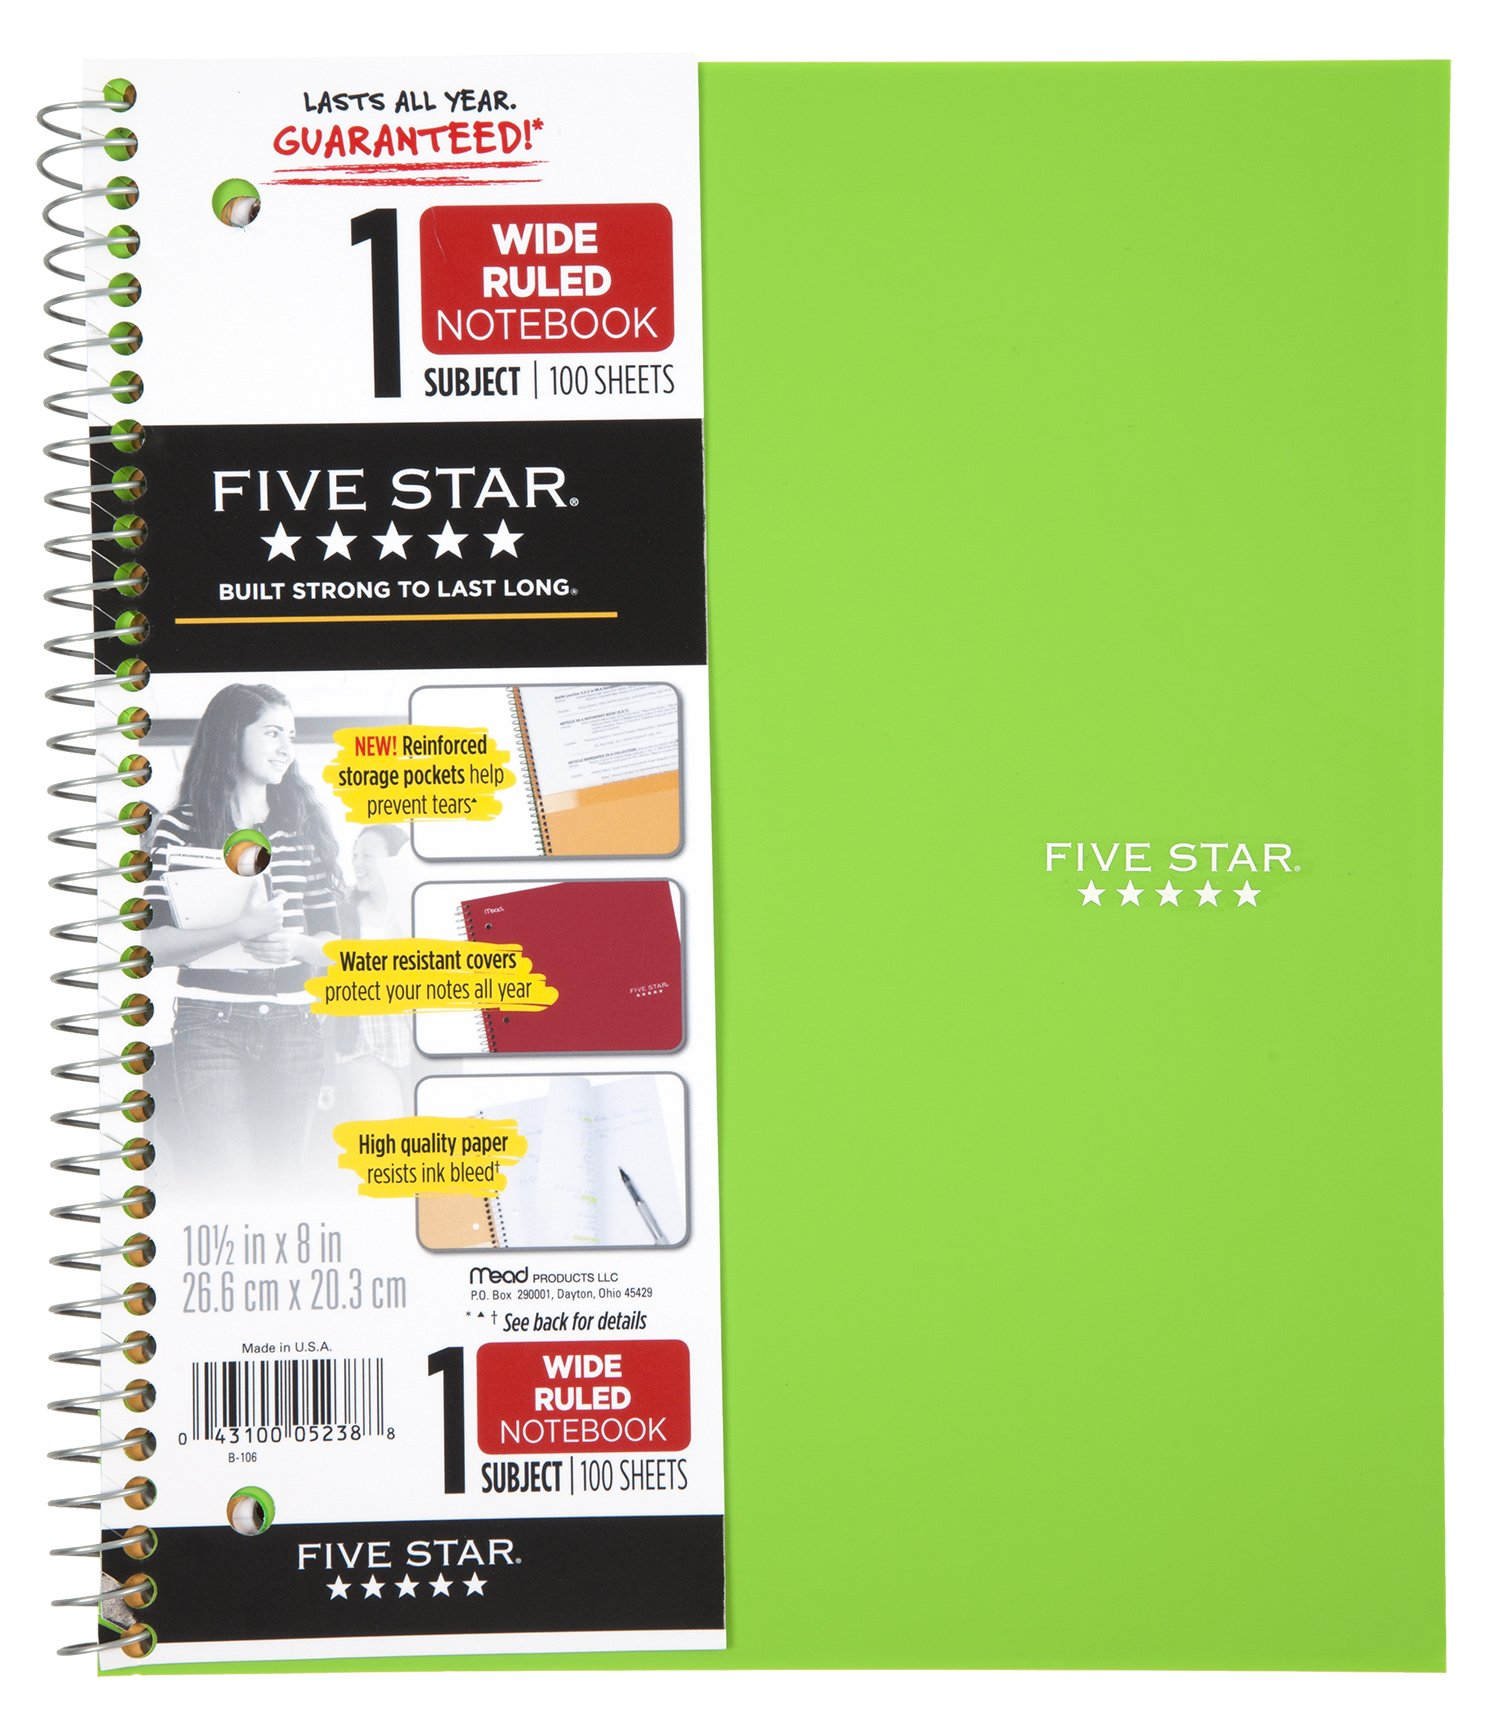 """CDM product Five Star Spiral Notebooks, 1 Subject, Wide Ruled Paper, 100 Sheets, 10-1/2"""" x 8"""", Assorted Colors, 6 Pack (38046) small thumbnail image"""